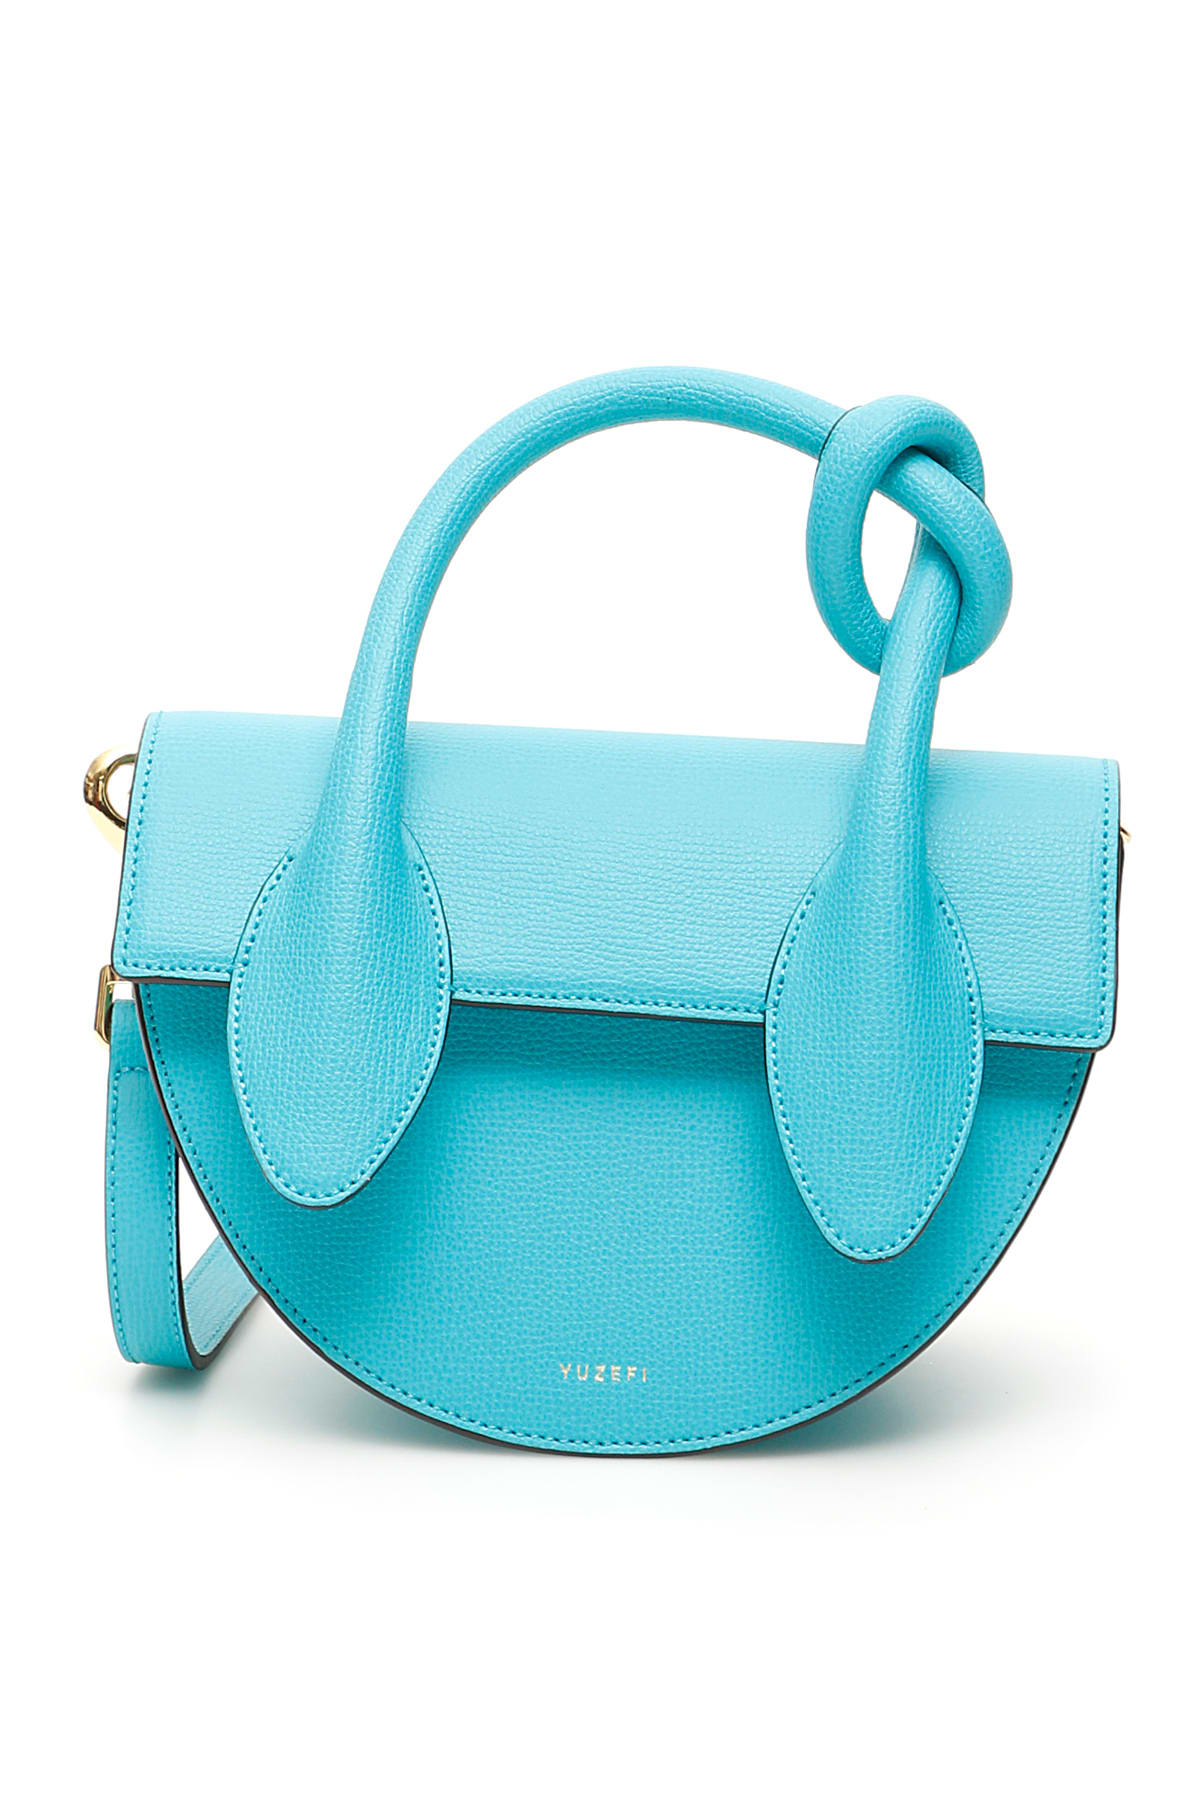 Yuzefi Yuzefi Dolores Bag Teal Light Blue 11034655